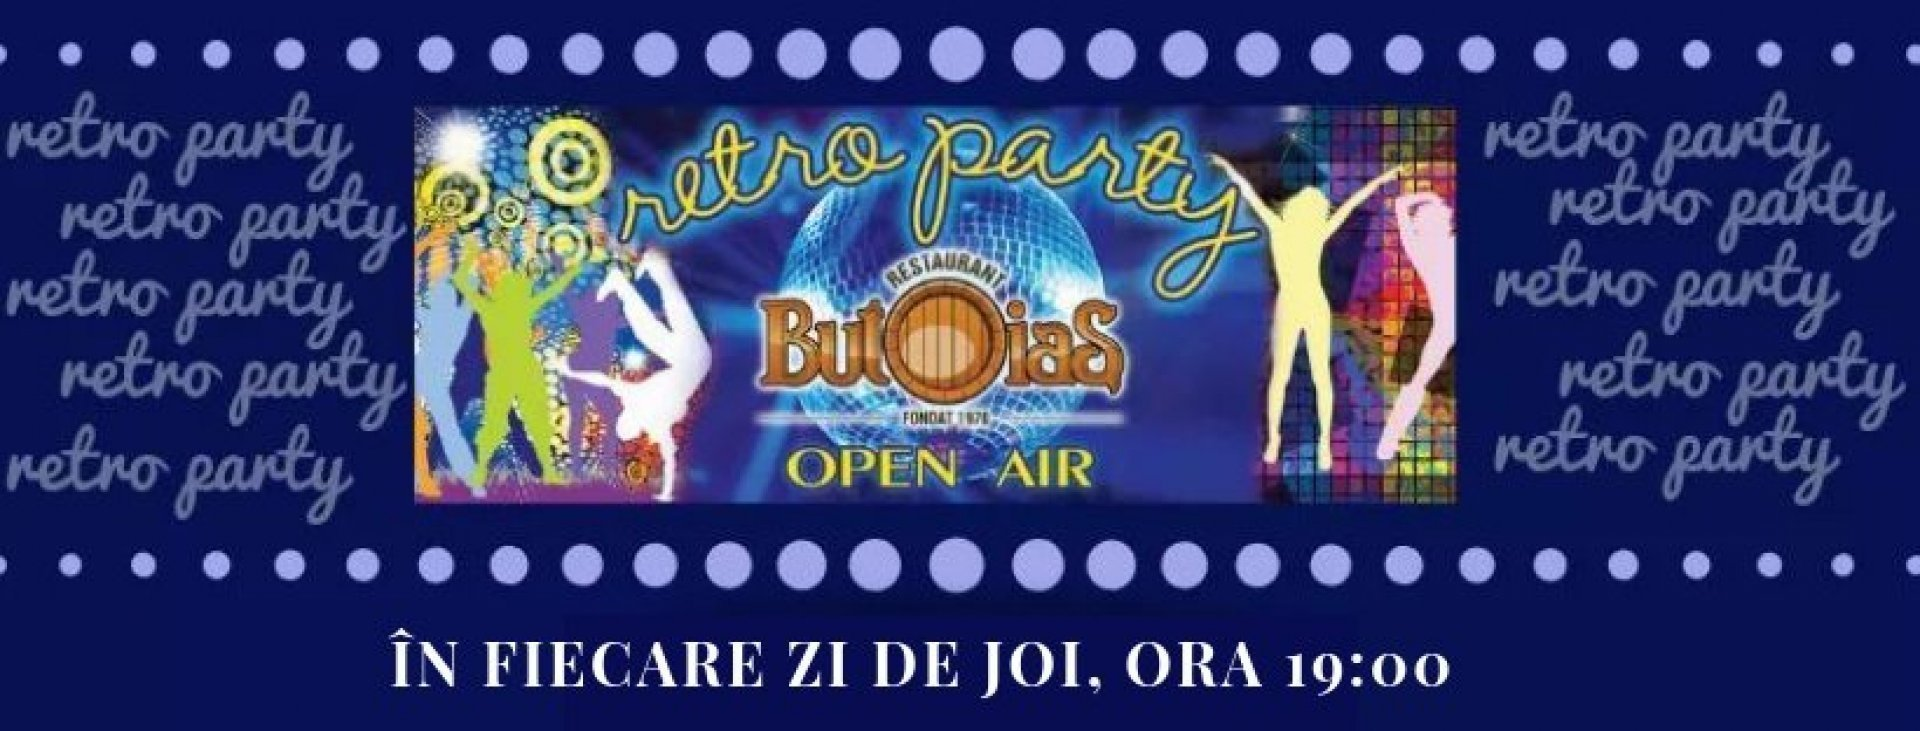 Butoias RETRO PARTY - Open air